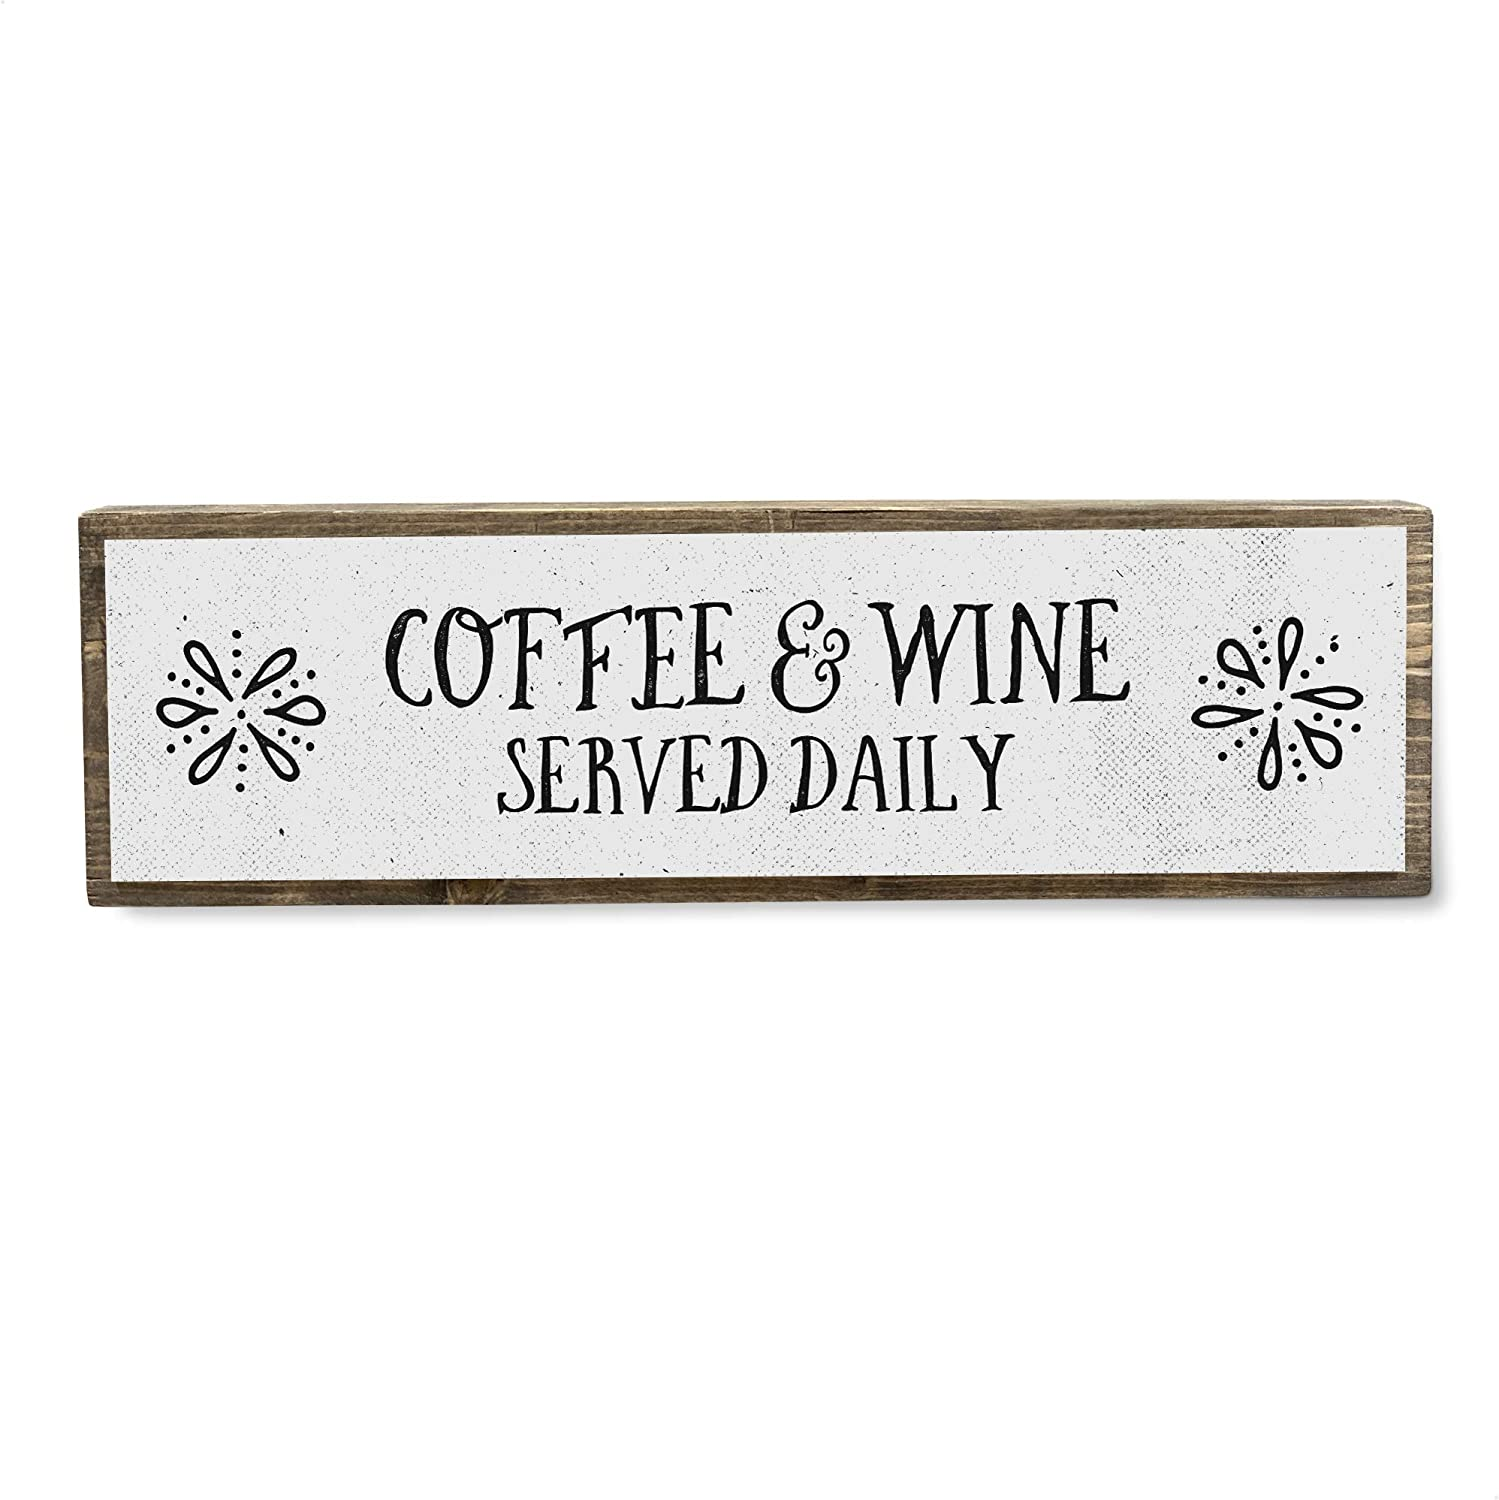 Coffee and Wine Served Daily - Handmade Metal Wood Coffee Sign – Cute Rustic Wall Decor Art - Farmhouse Decorations – Coffee Signs for Home Decor